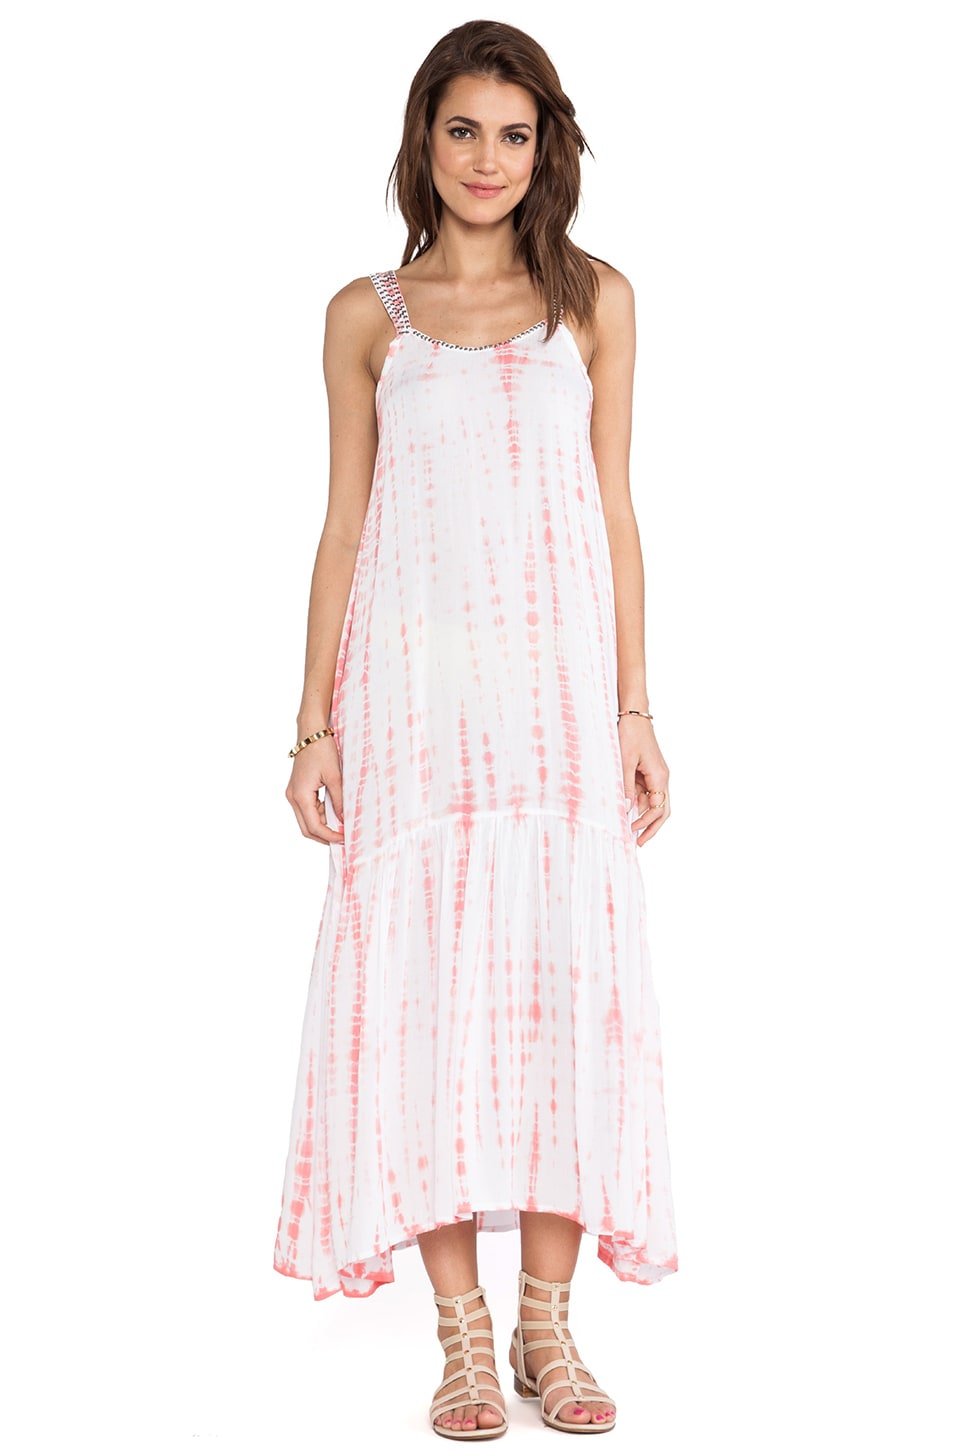 Tiare Hawaii Naples Maxi Dress in Peach White Tie Dye